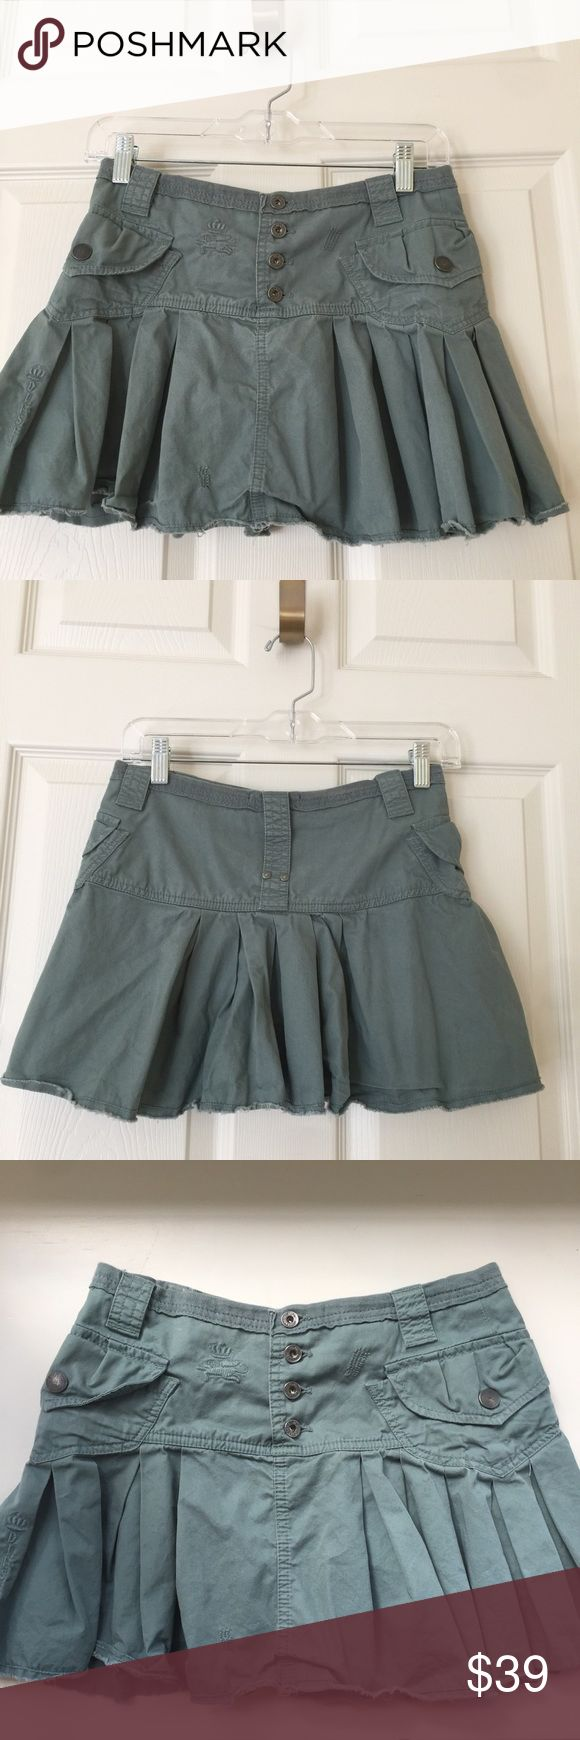 Diesel pleat skirt size 24 Diesel pleated skirt size 24. In excellent condition. Diesel Skirts Mini